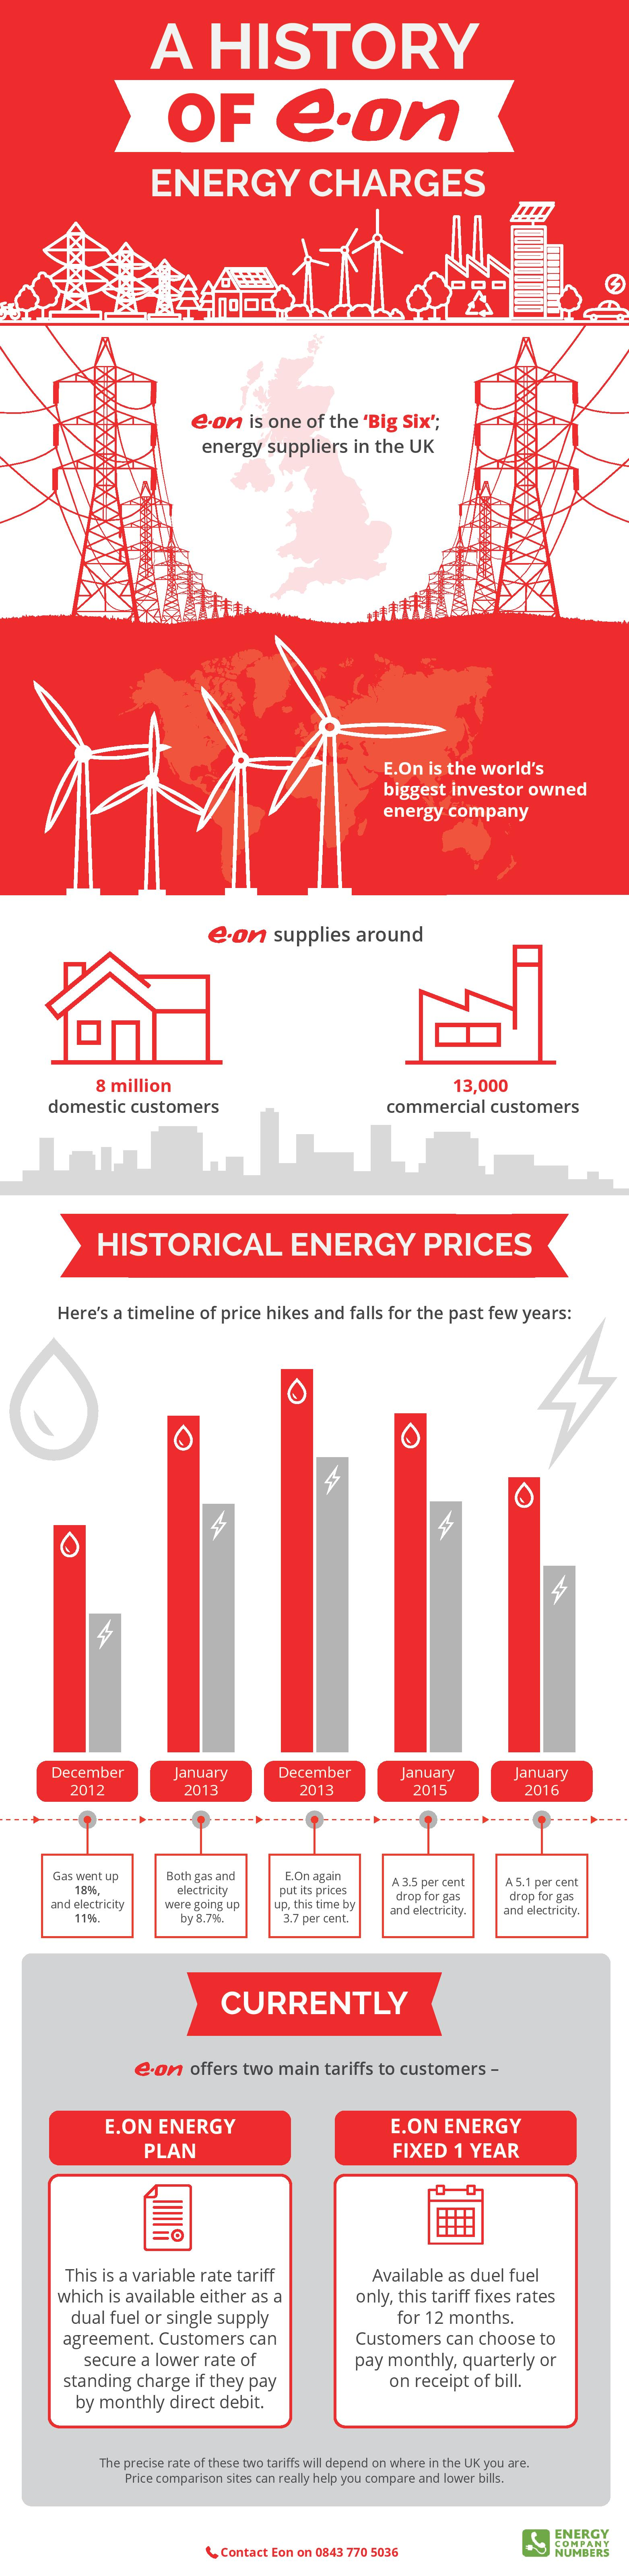 History of E.on Energy Charges INFOGRAPHIC